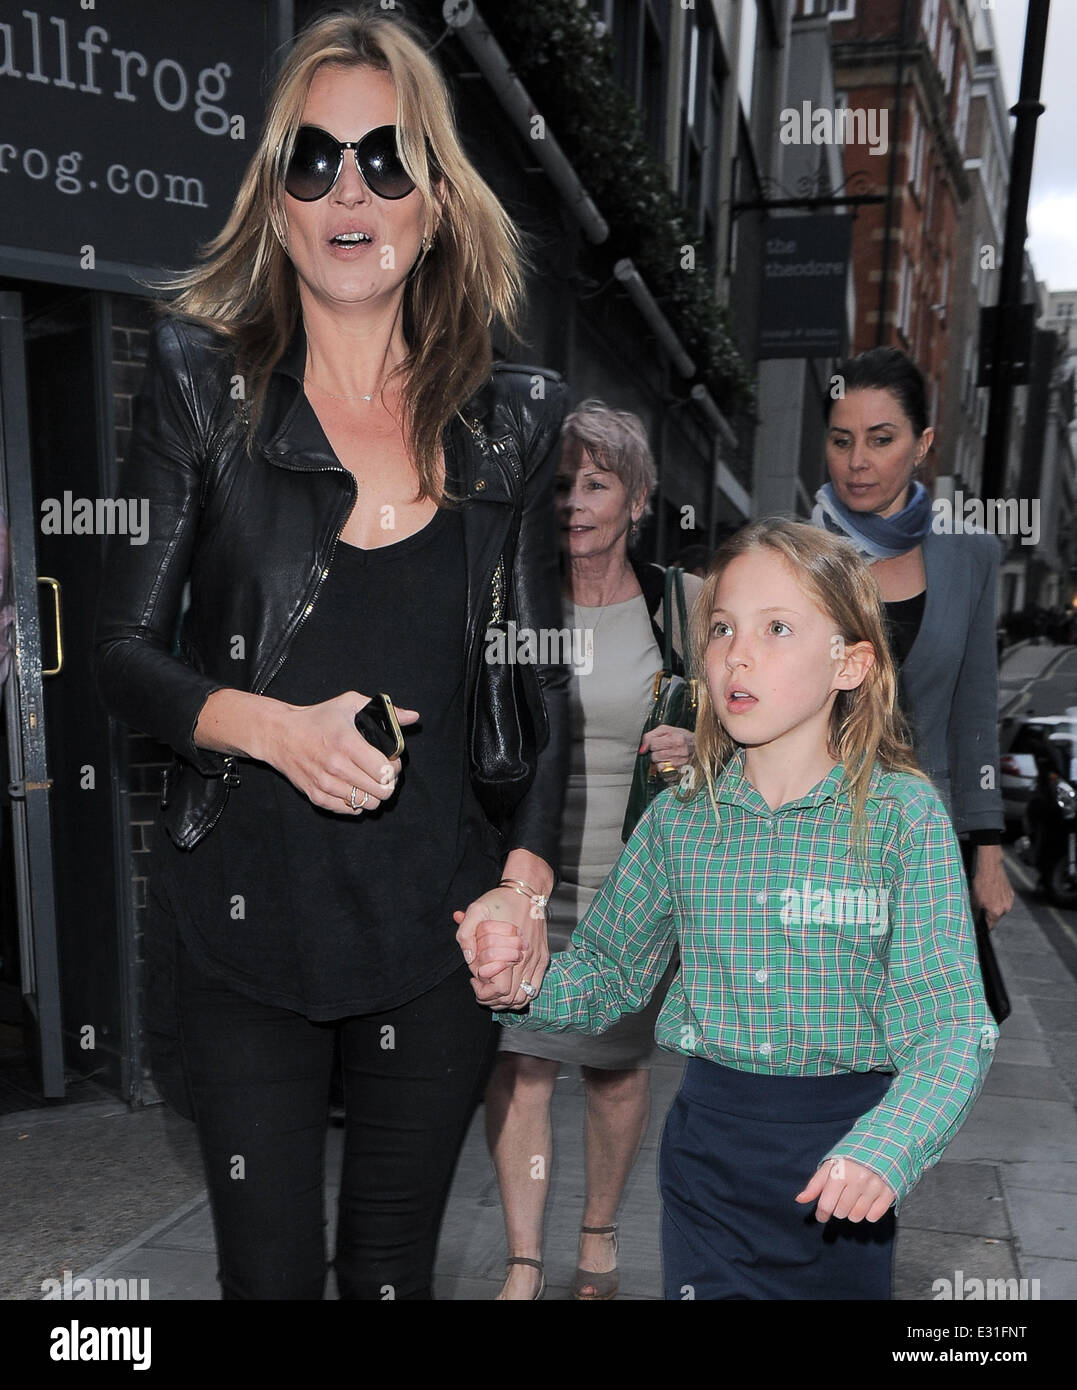 Kate Moss and daughter Lila Grace Moss attend the Debbi Clark's 'An Exhibition of Portraits' at the - Stock Image